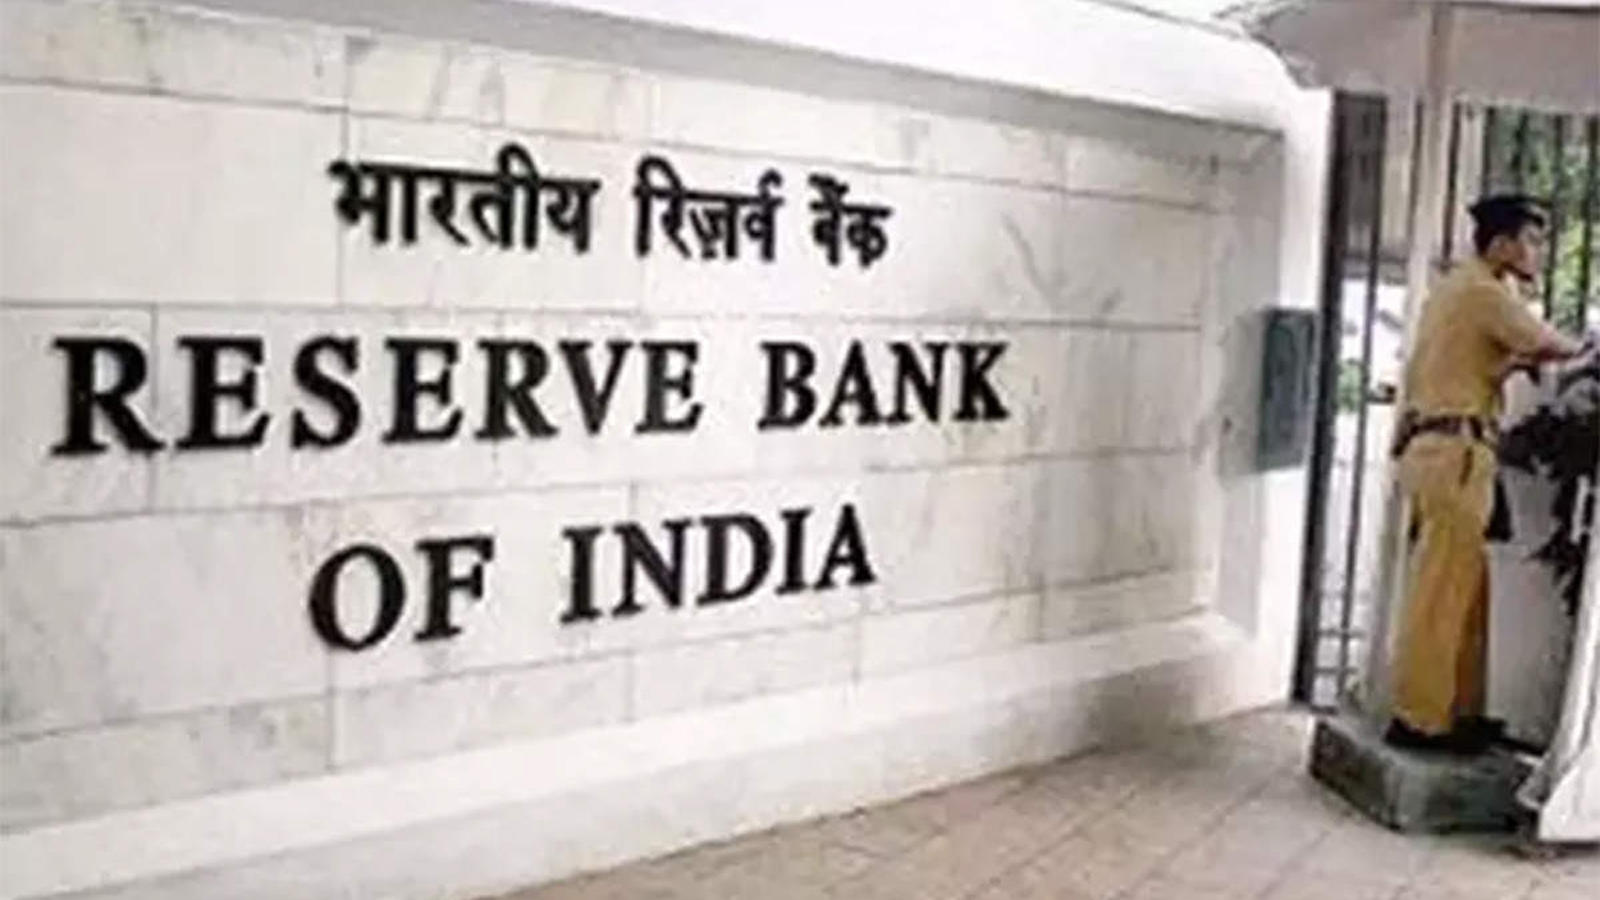 whats-floccinaucinihilipilification-ask-reserve-bank-of-india